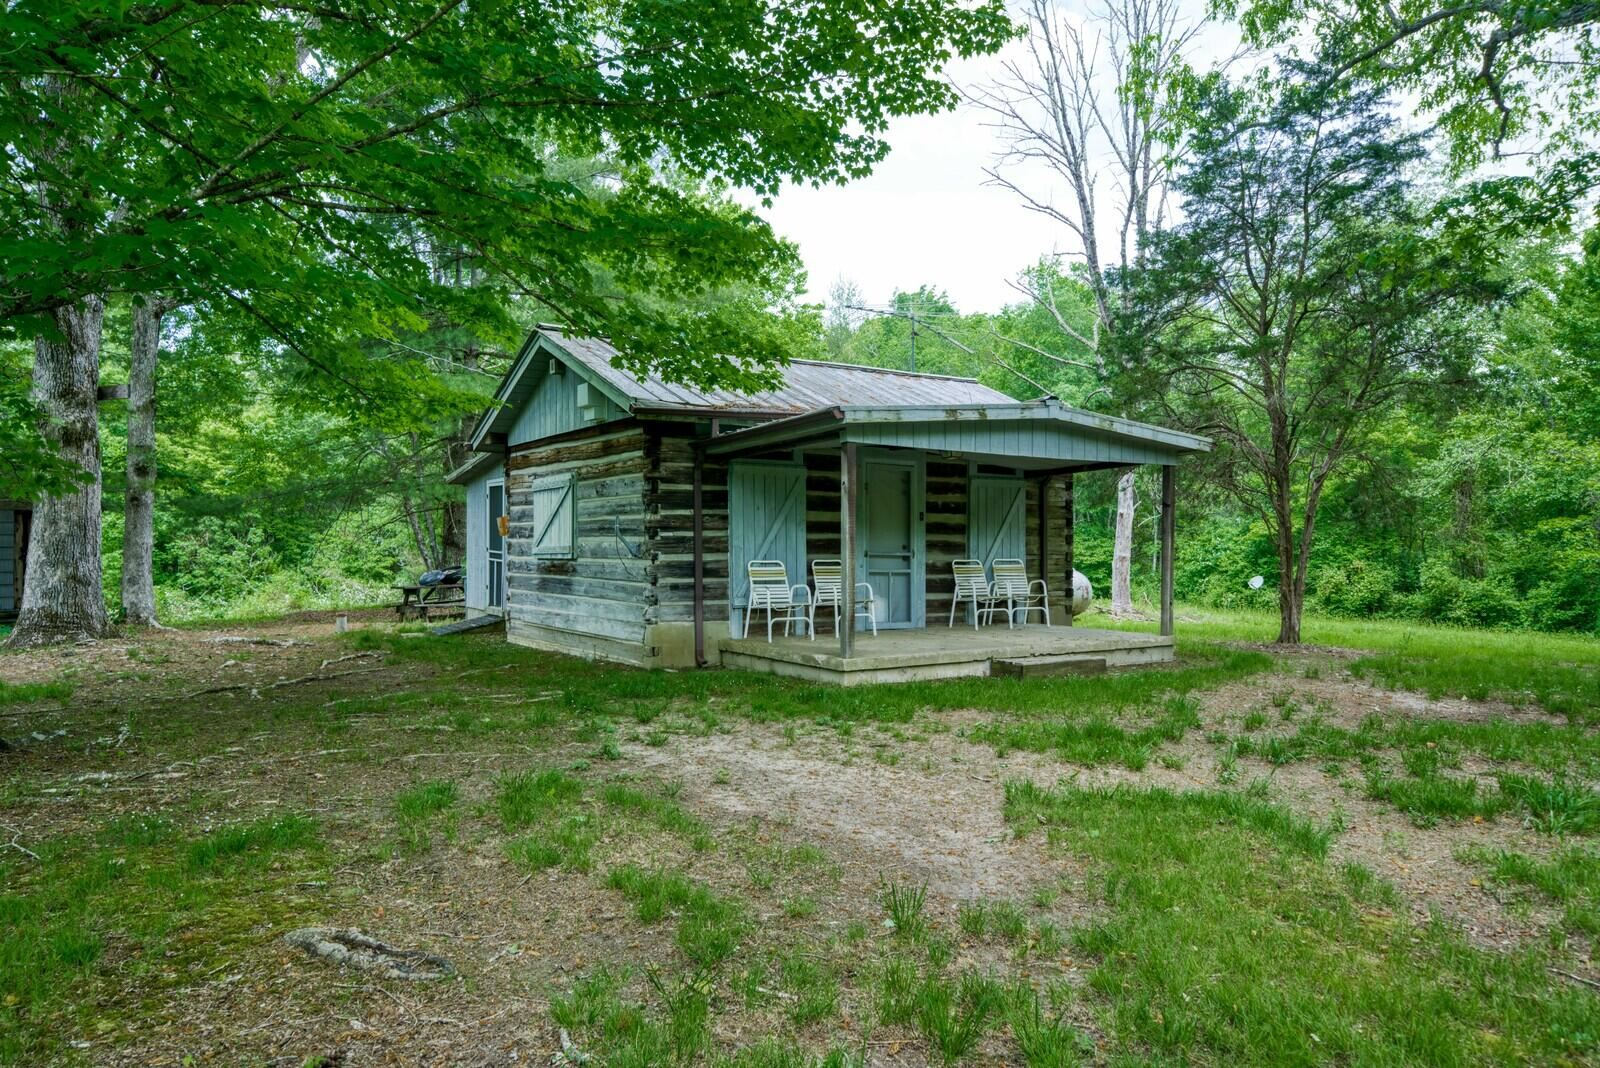 Photo of 00 E Keyes Rd, Crab Orchard, TN 37723 (MLS # 1153239)